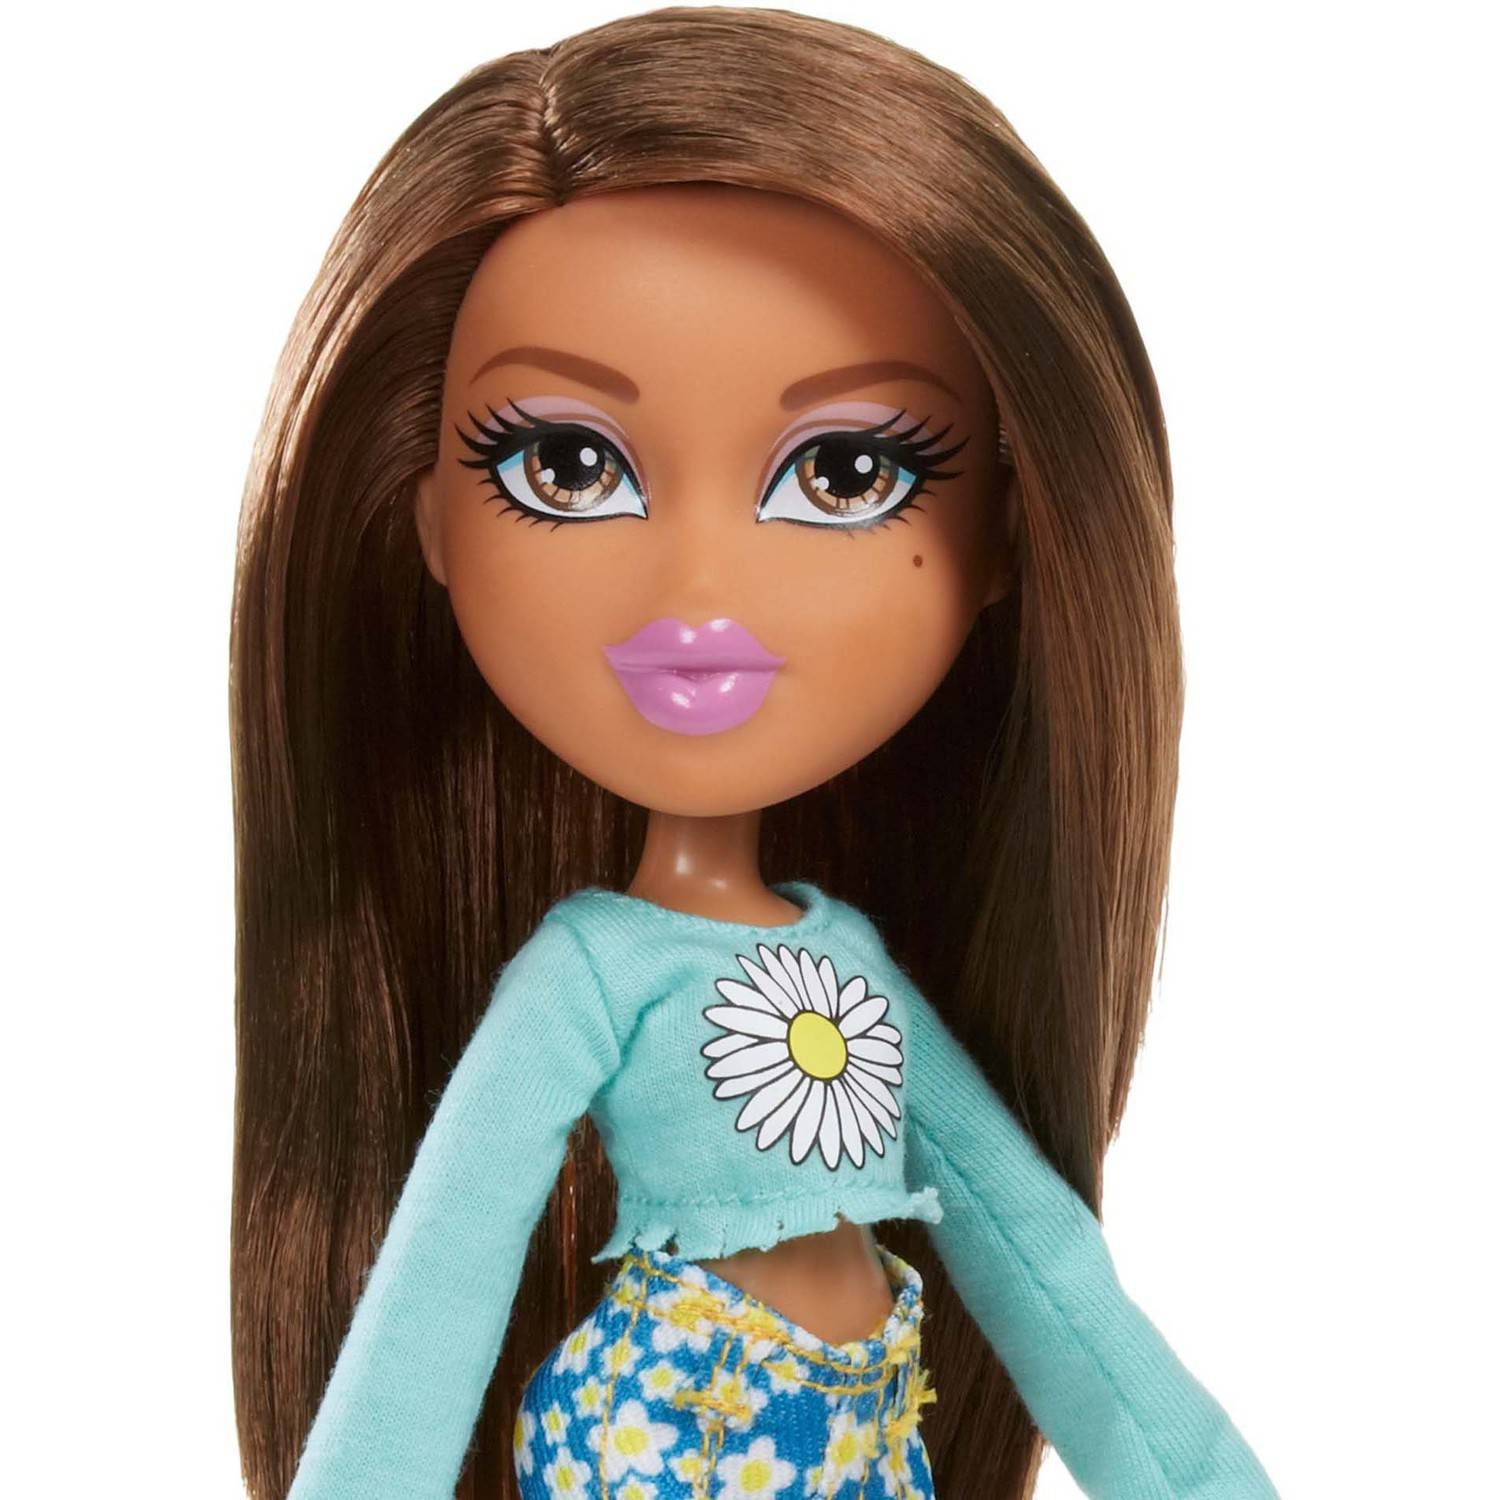 Uncategorized Bratz Doll Images are you more barbie or bratz playbuzz